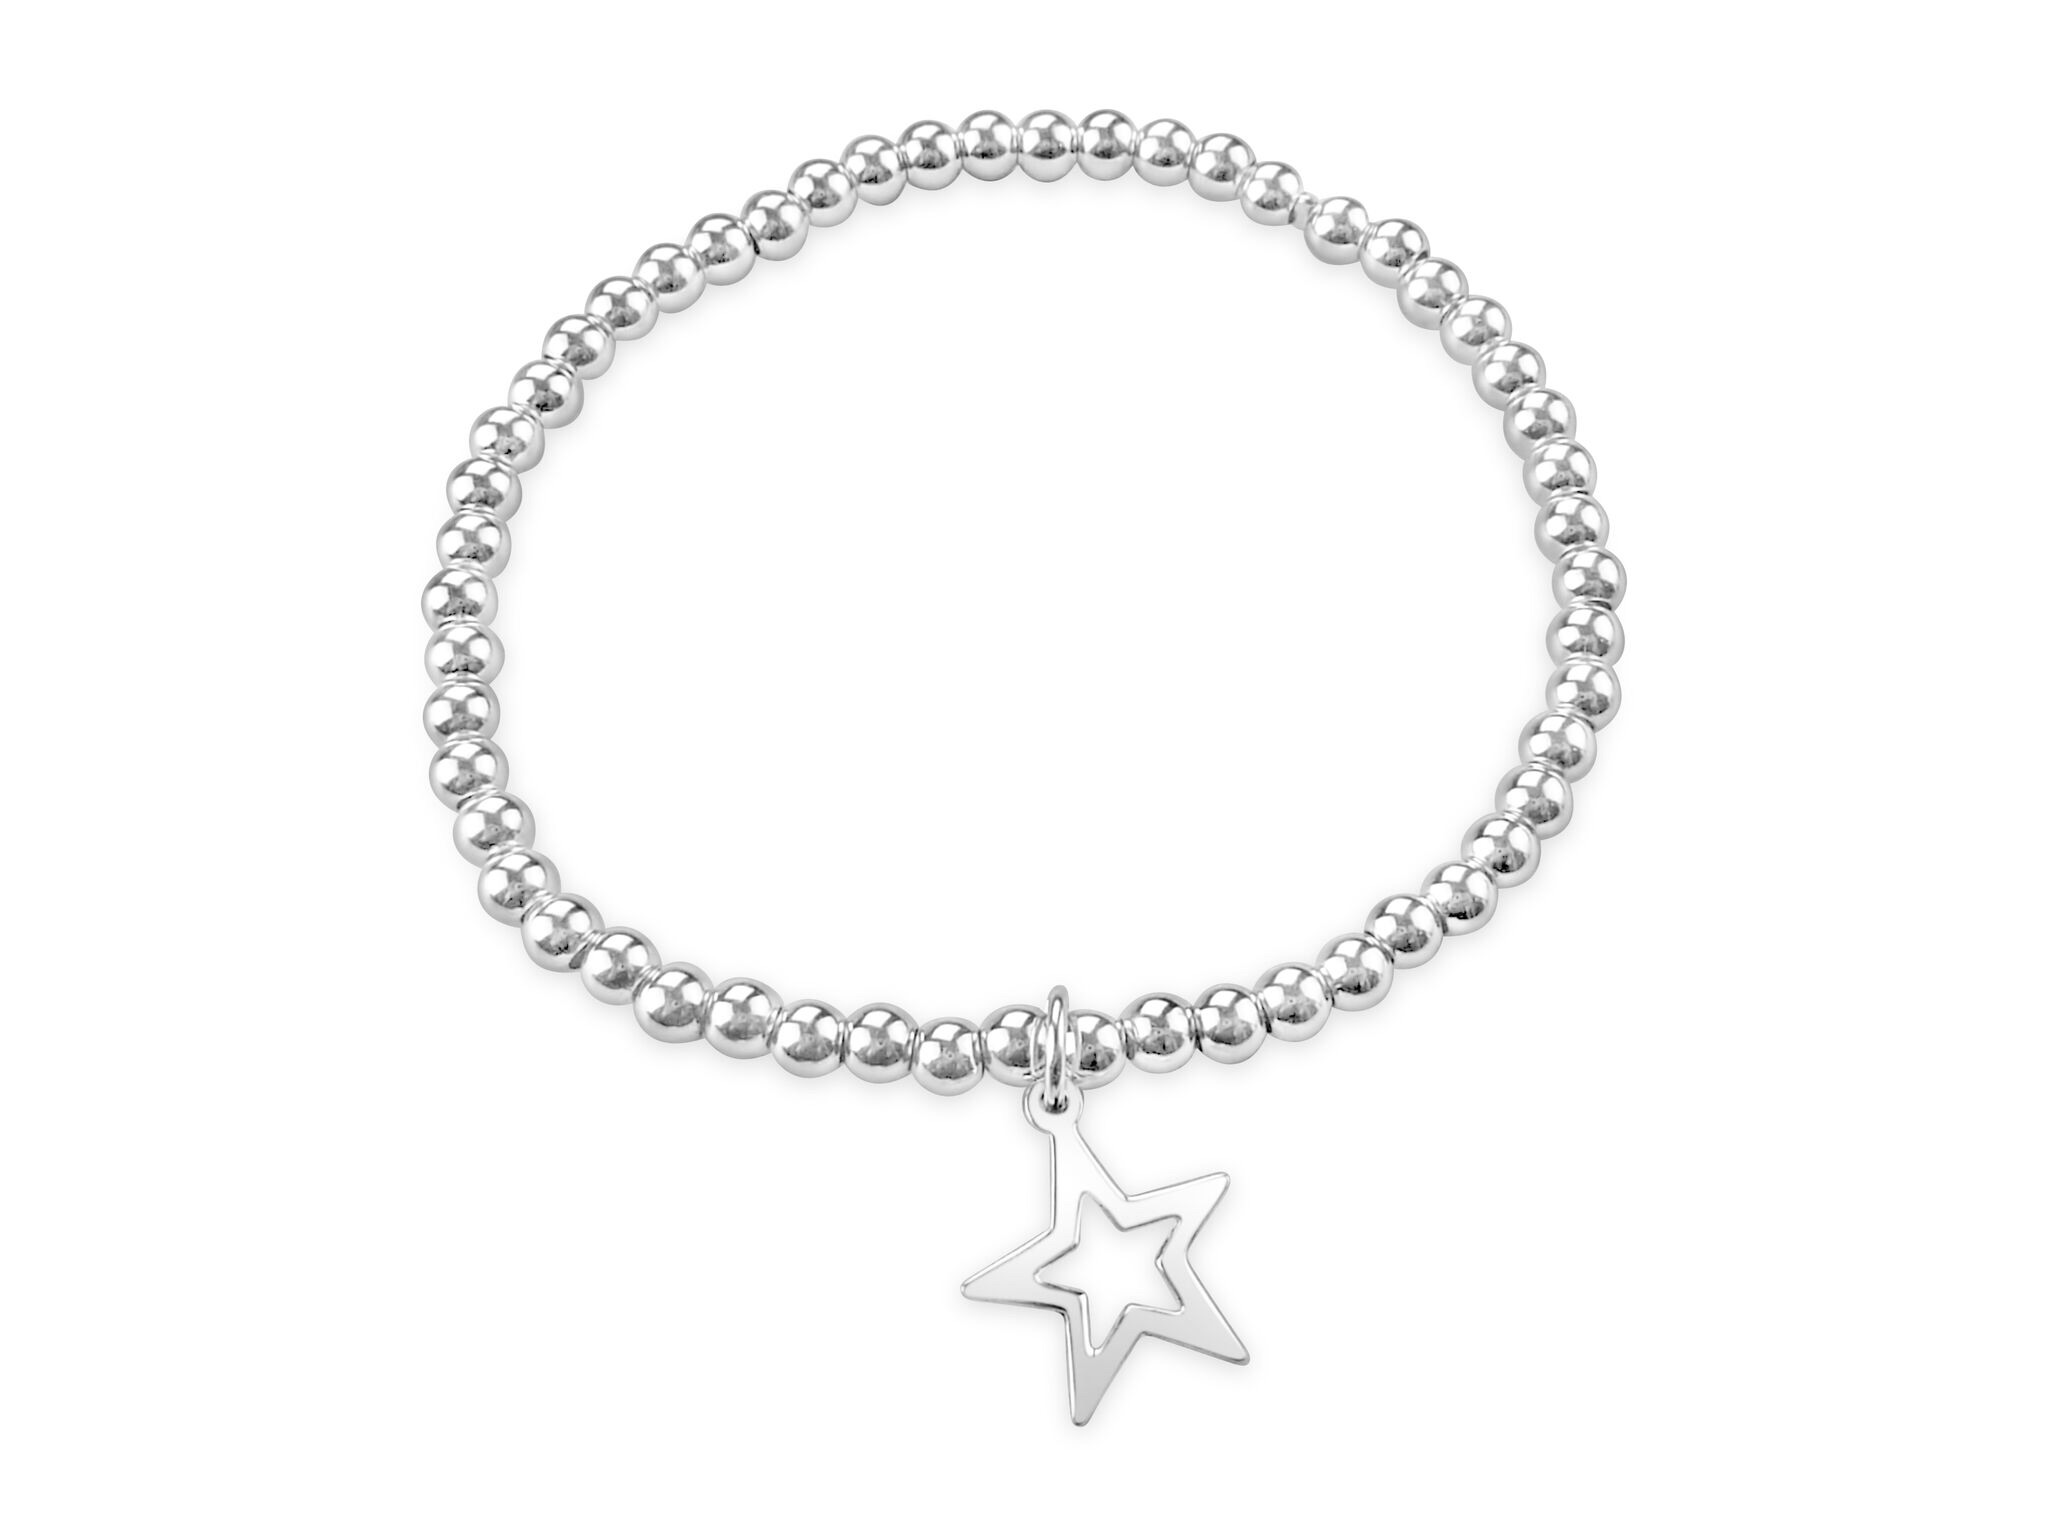 Silver ball bead bracelet with heart charm